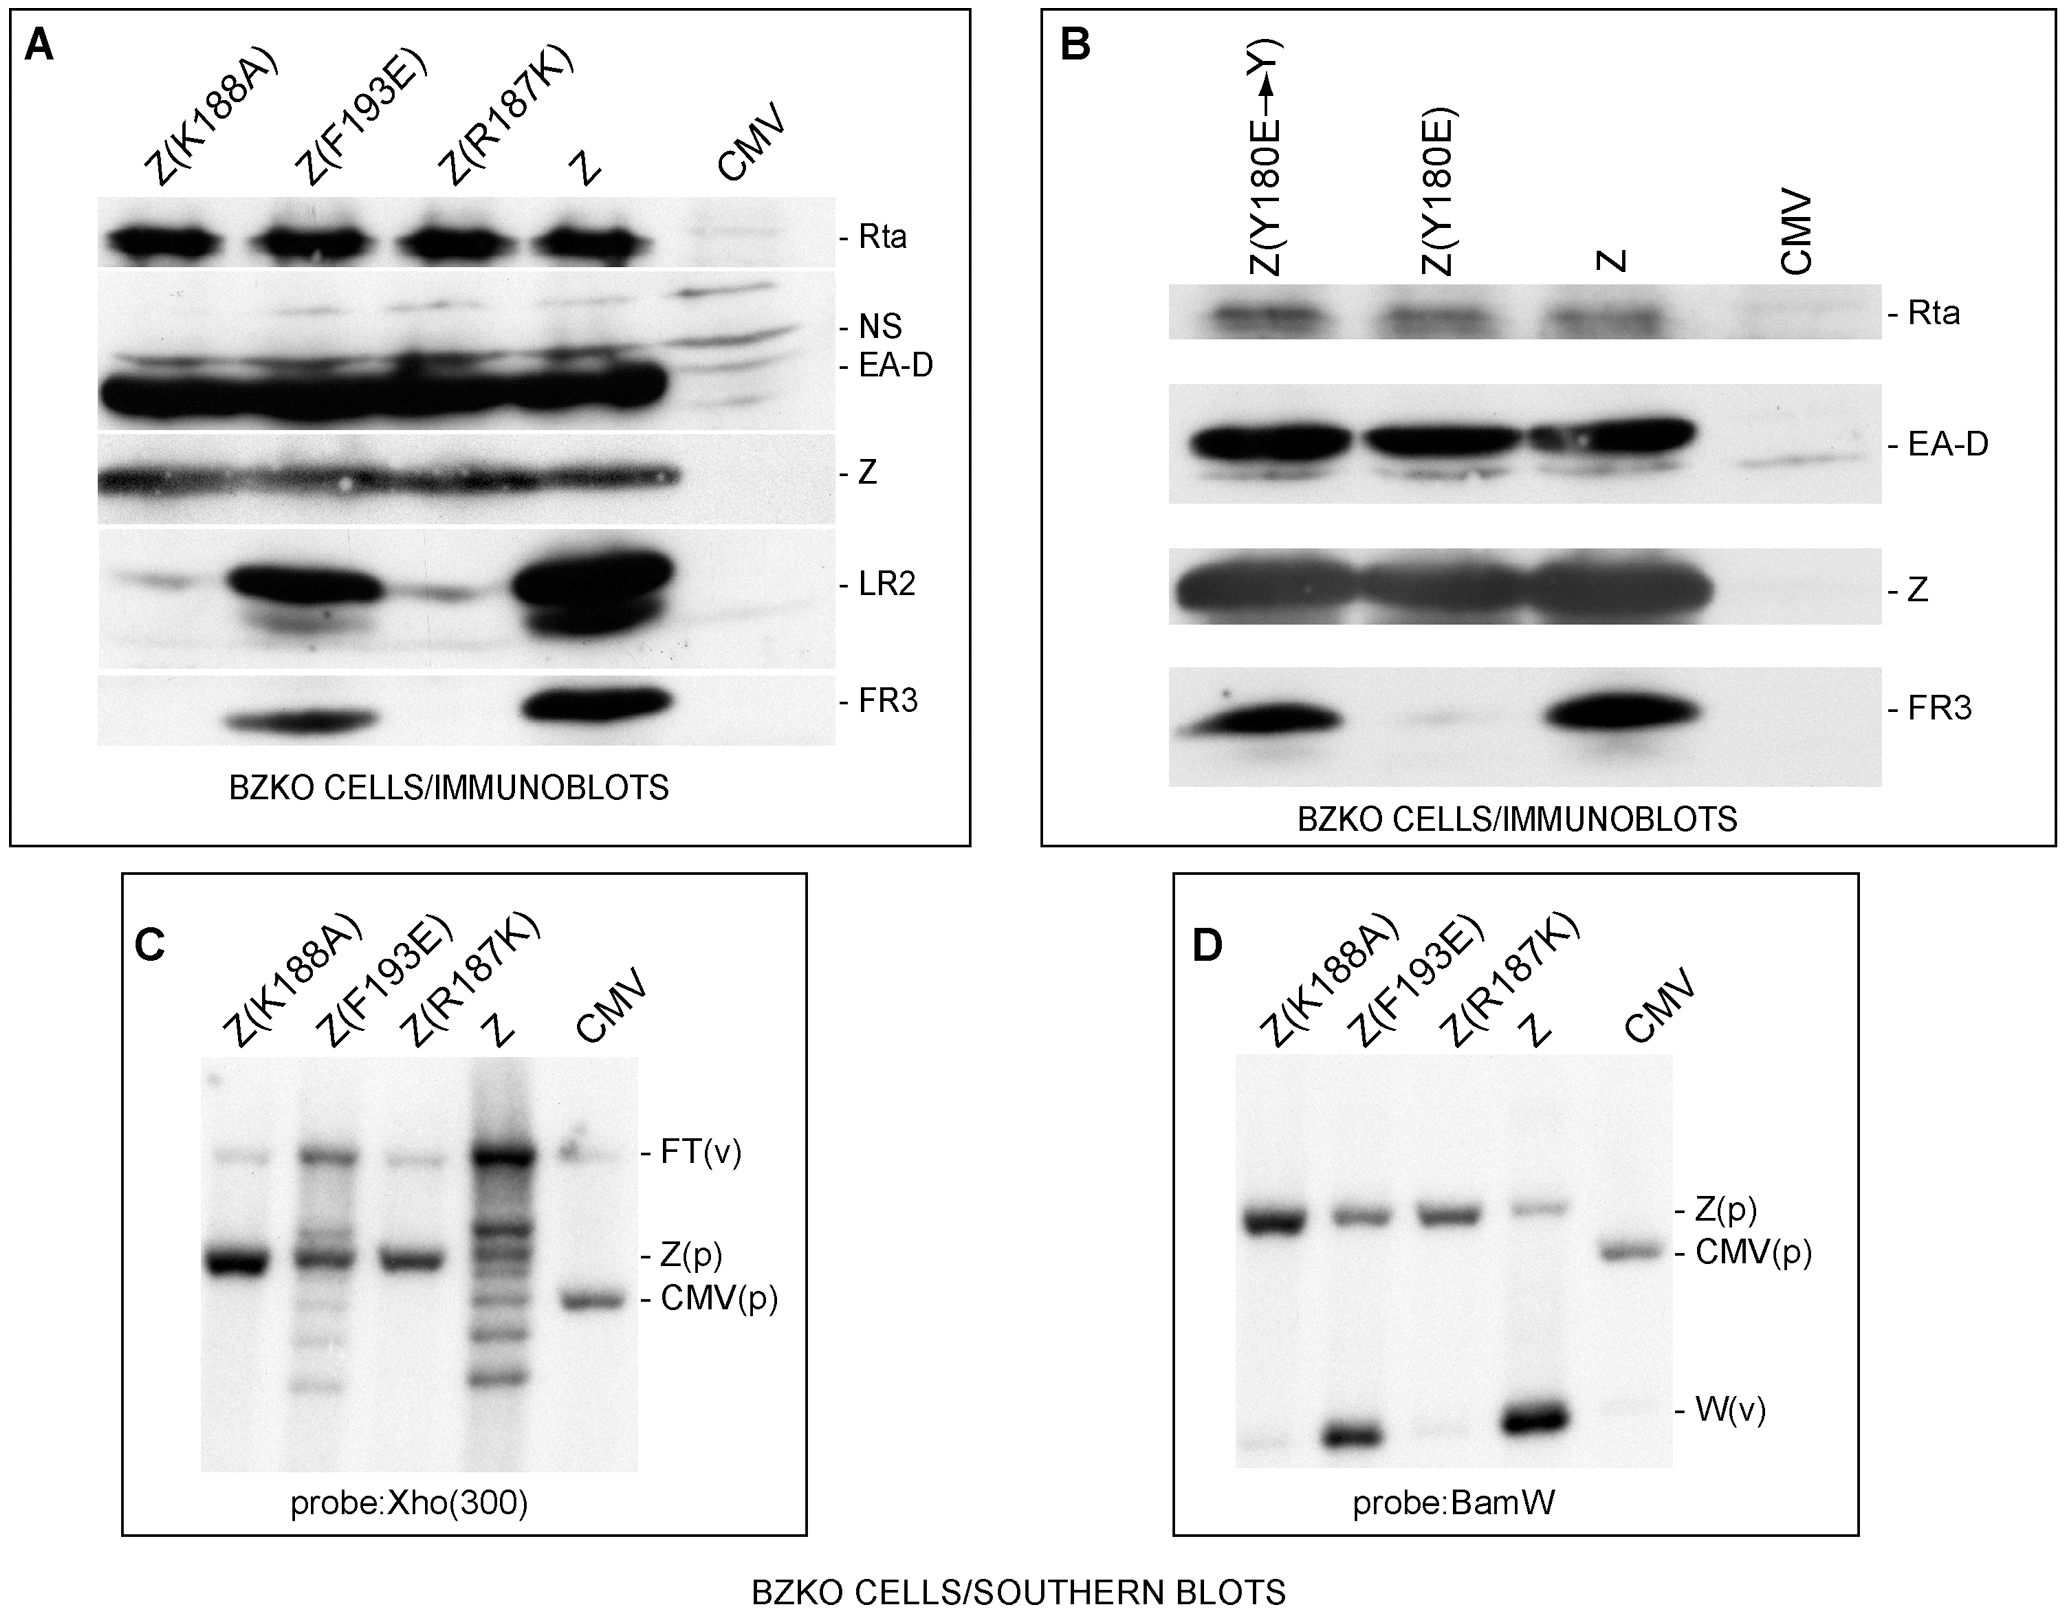 ZEBRA mutants defective in lytic replication and late gene expression.